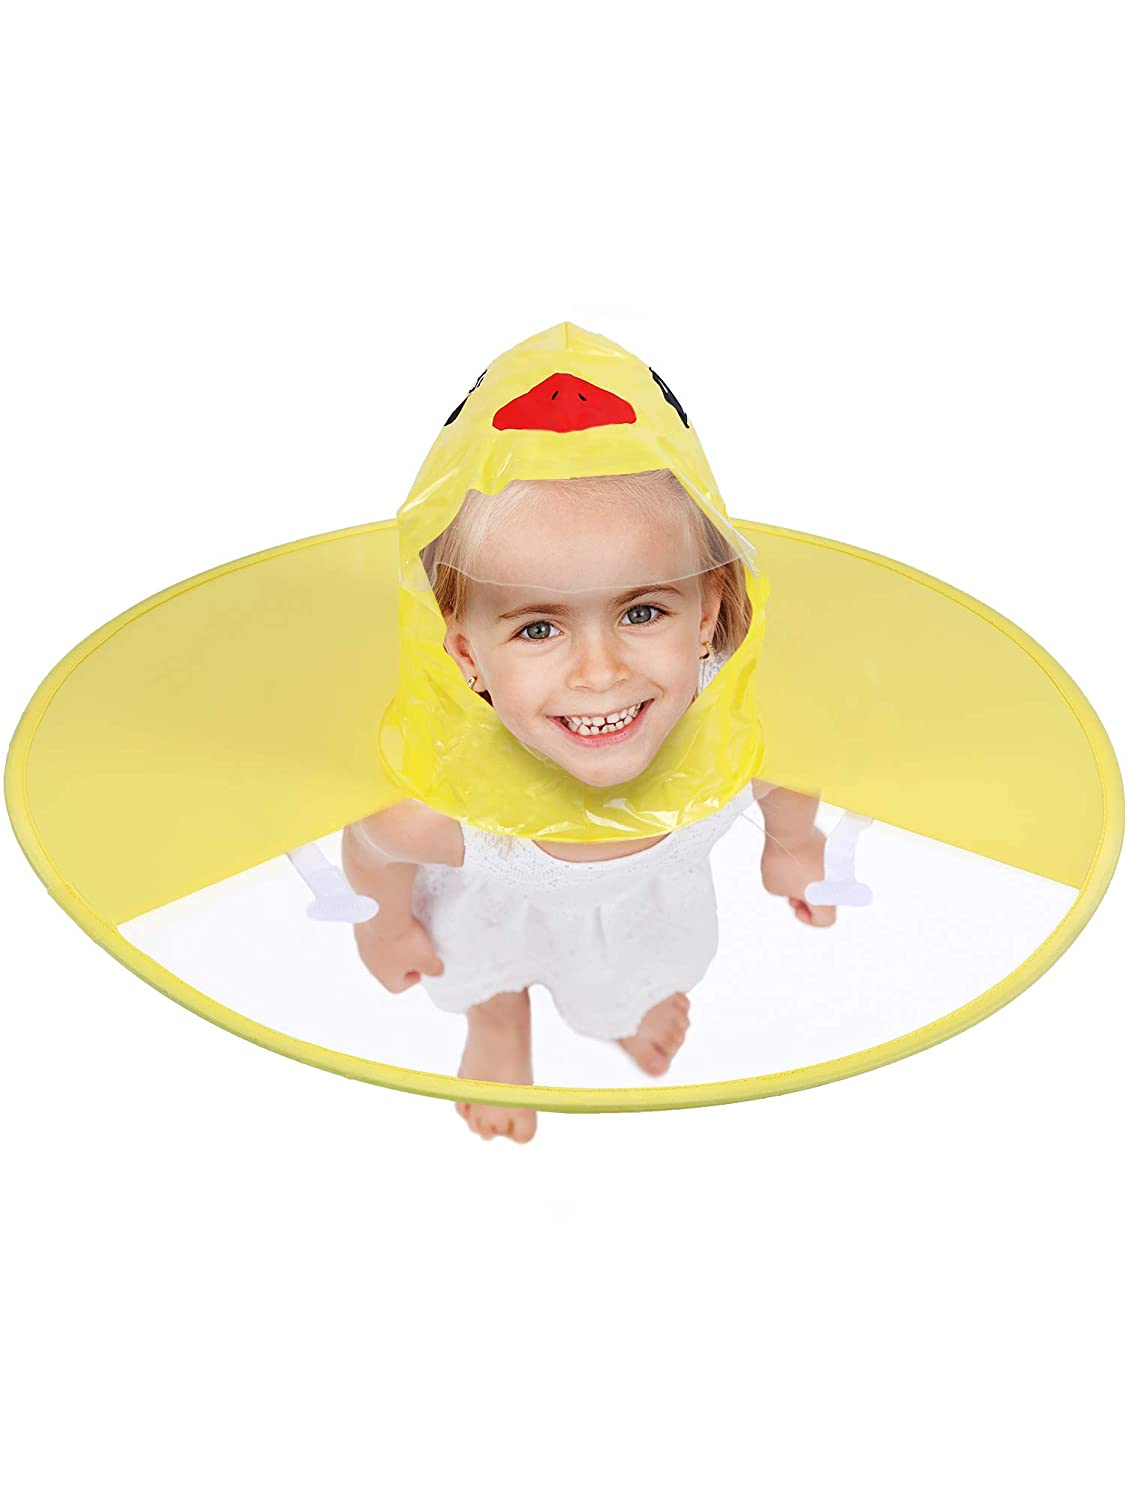 Cartoon Duck Rain Coat UFO Shaped Umbrella Yellow Raincoat Folding Waterproof Hat Cape for Children Raining Fun